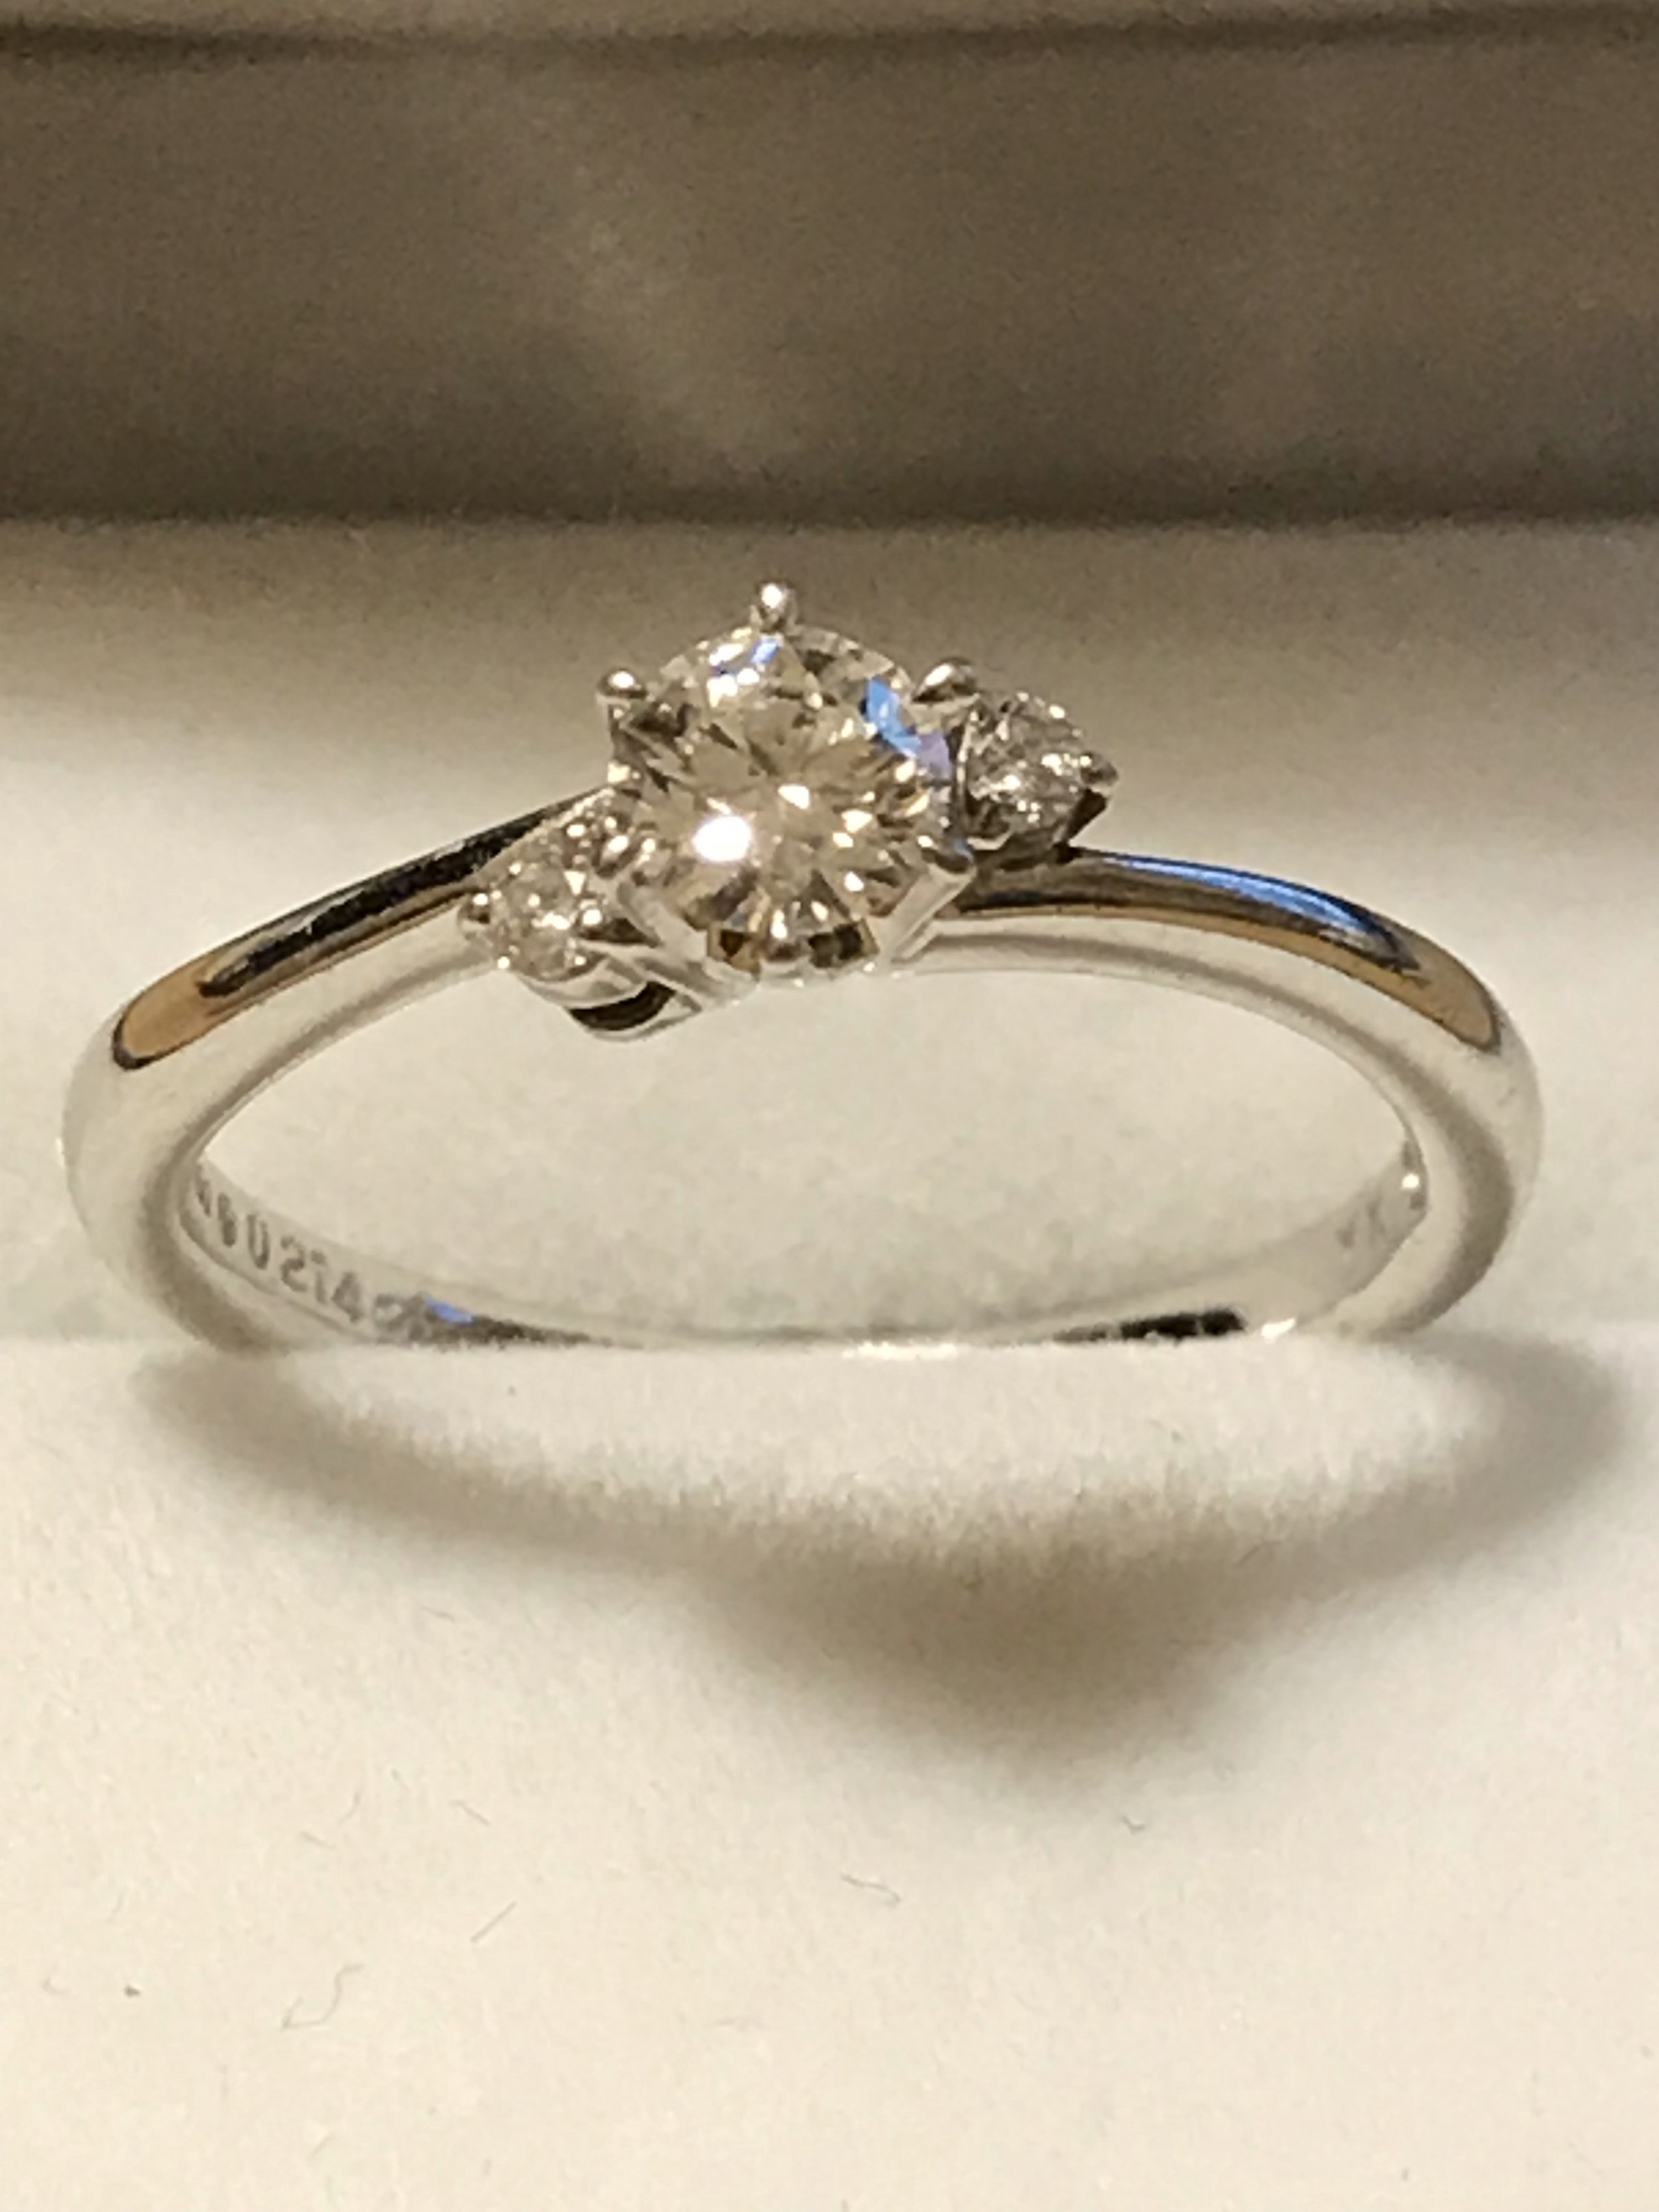 How To Propose To Your Girlfriend While Traveling The World By Keenan Ngo Adventure Arc Medium